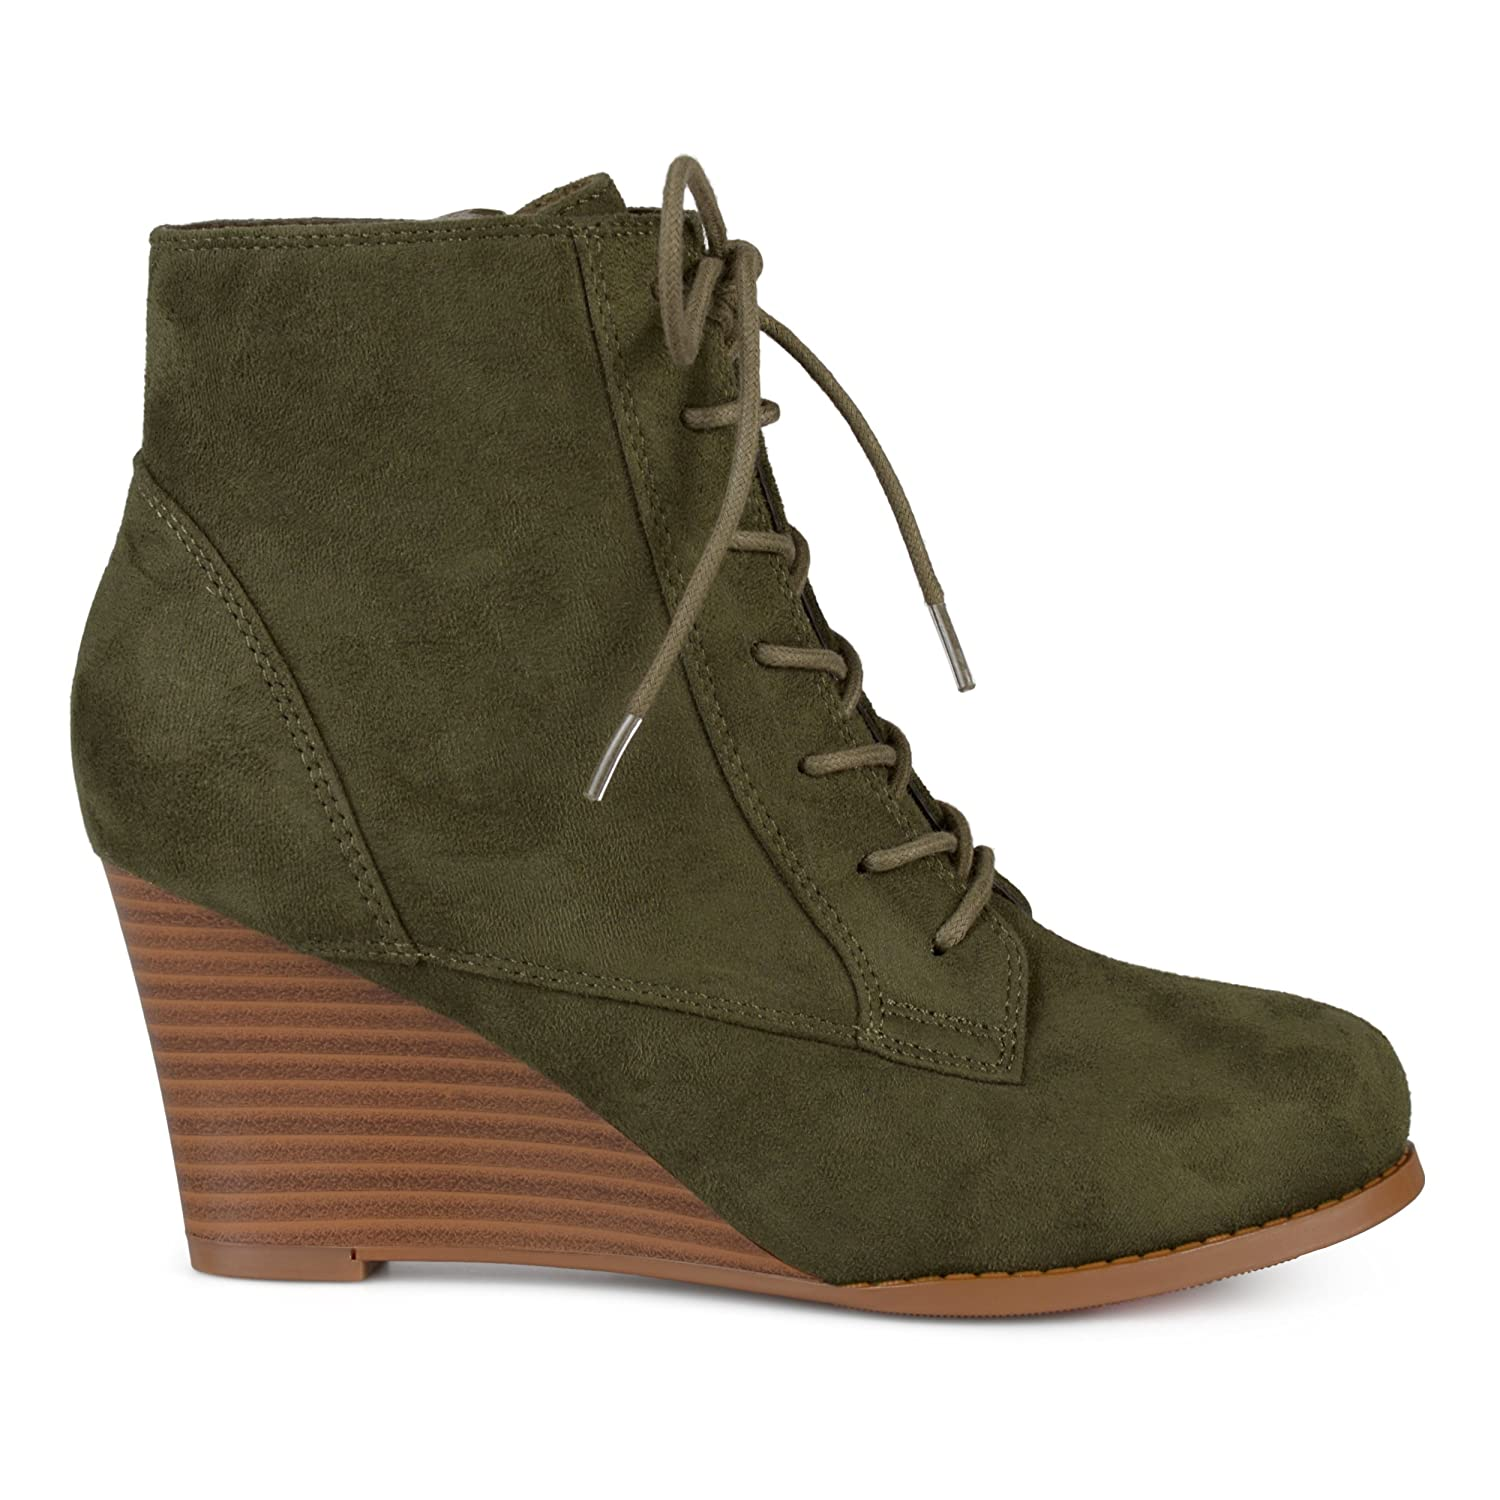 45331437bf0 Womens Lace-up Faux Suede Stacked Wedge Booties